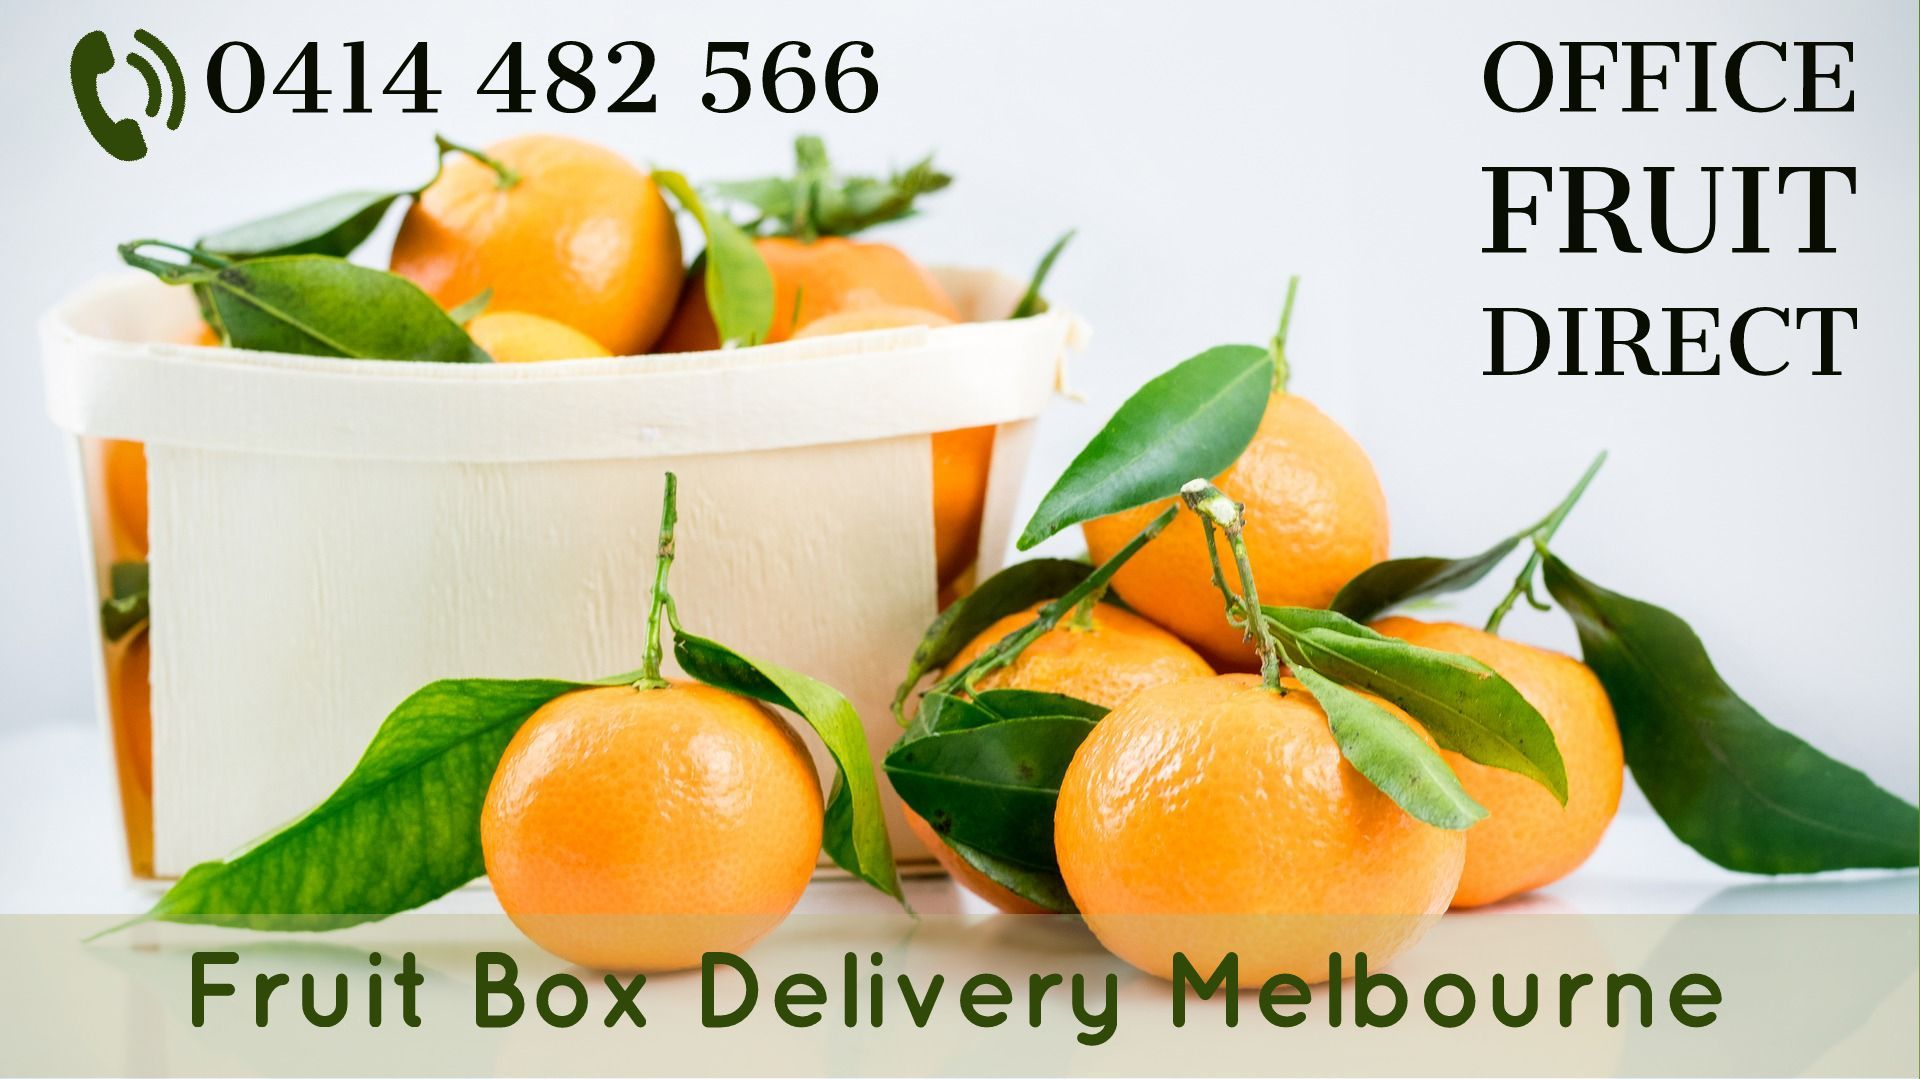 Fruit Box Delivery Melbourne (With images) Fruit, Fruit